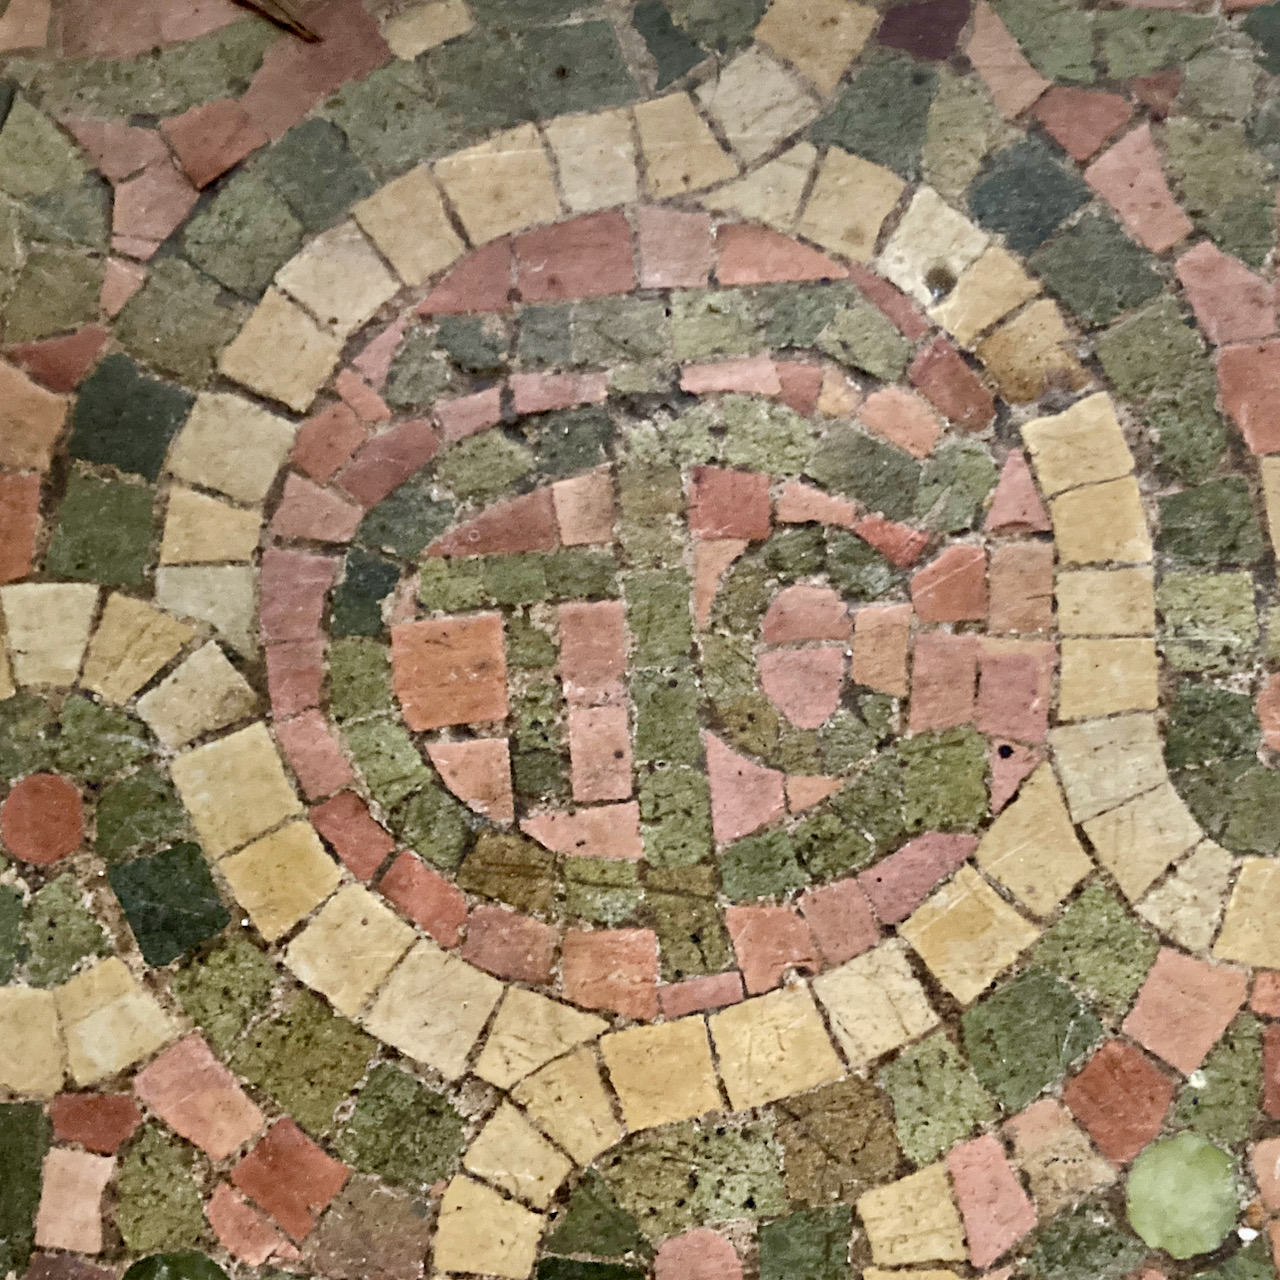 Initials LCT in stone mosaic on floor.